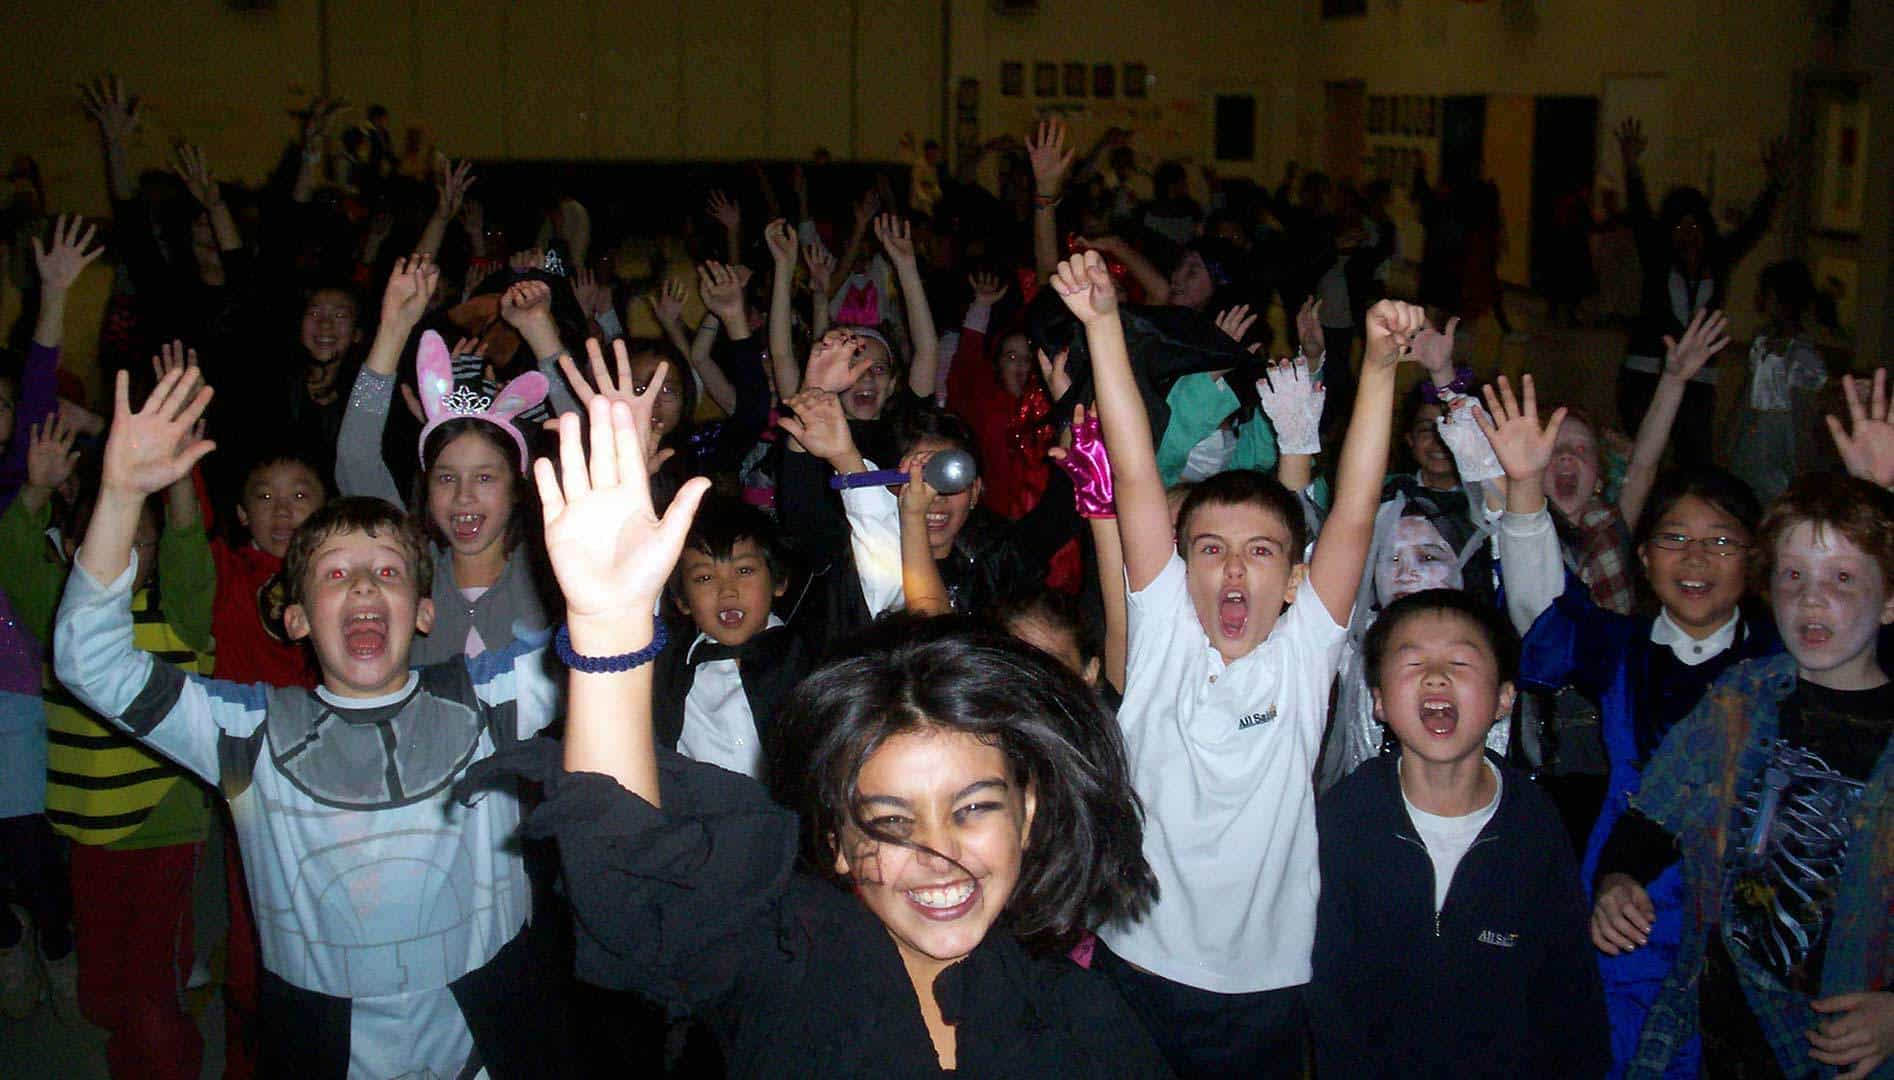 Happy cheering students at school dance